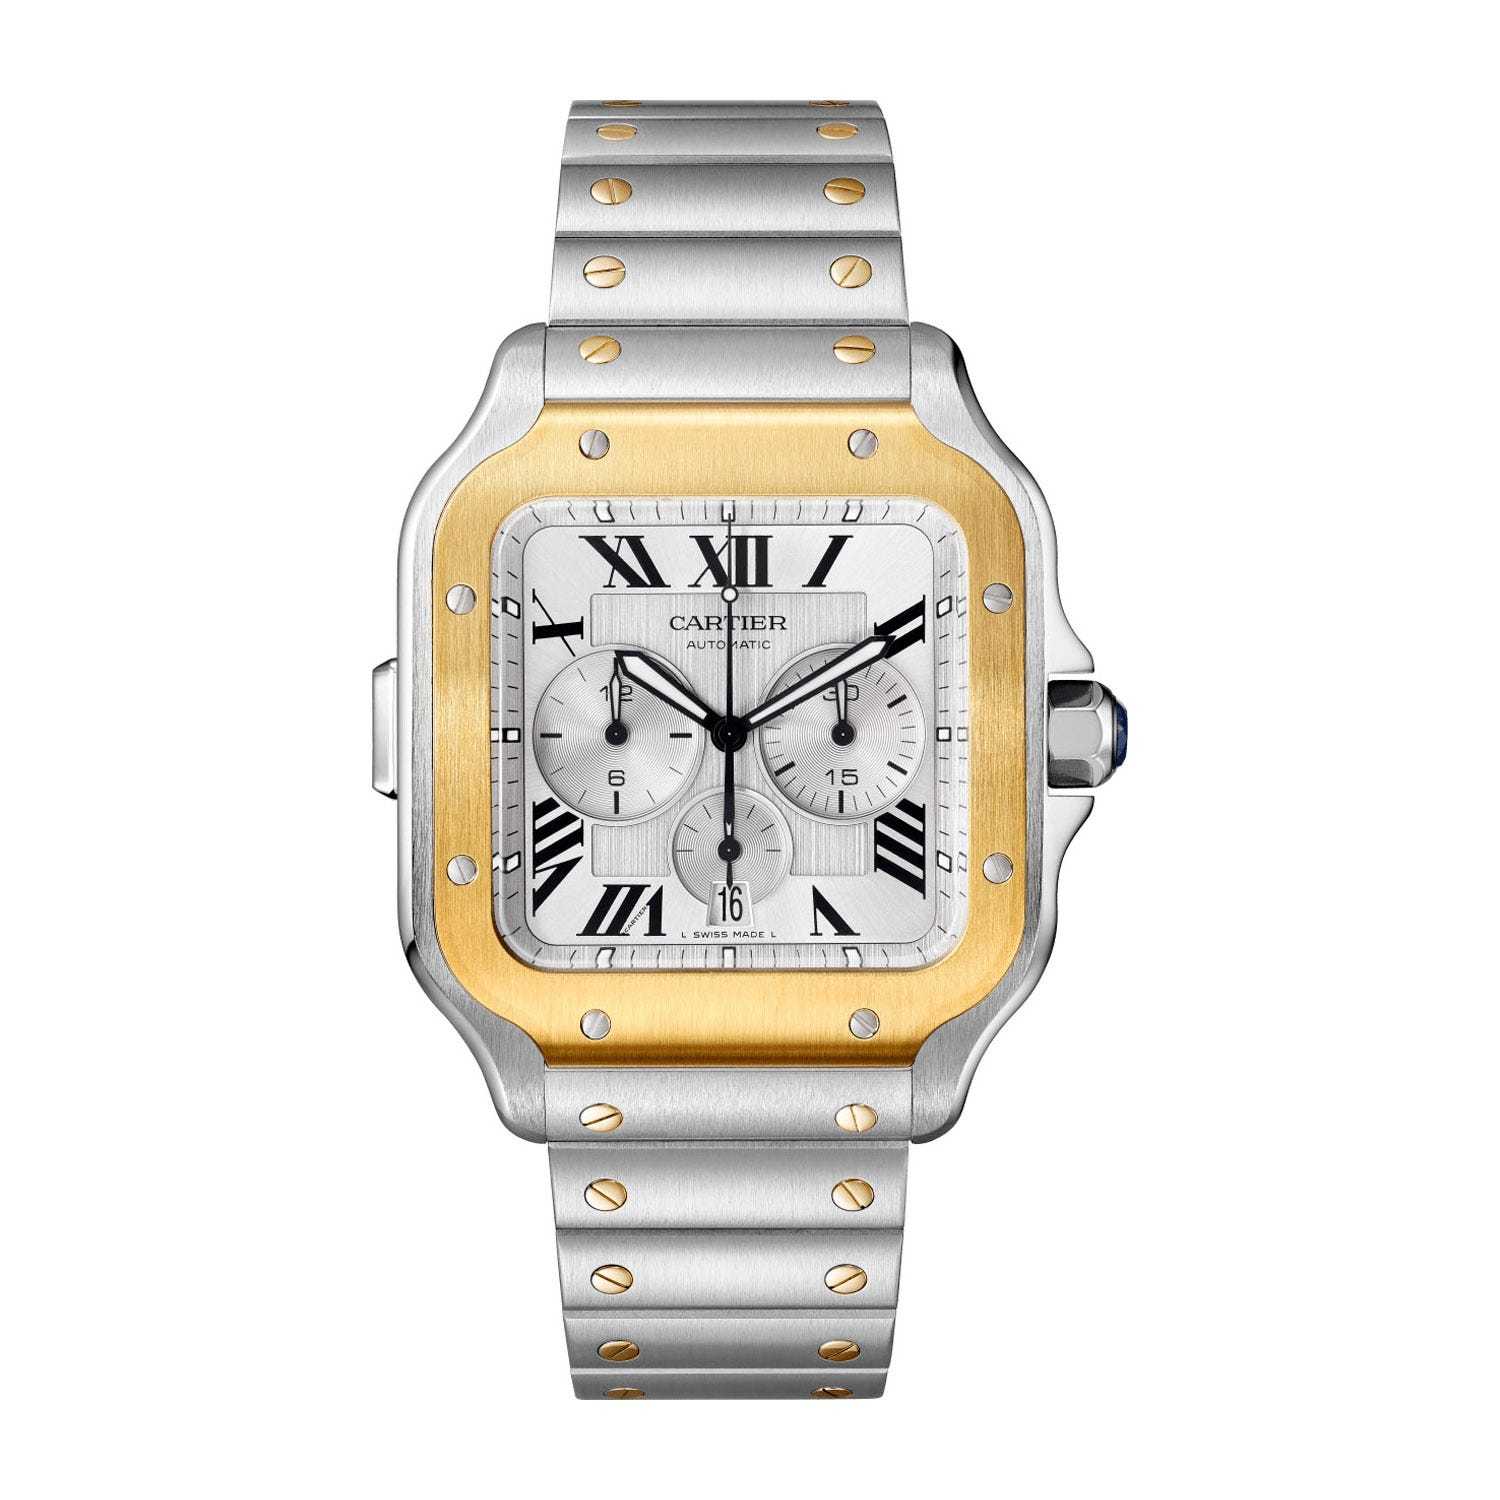 Cartier Santos Chronograph 43.3mm Silver Dial 18ct Yellow Gold Steel Case Bracelet Watch